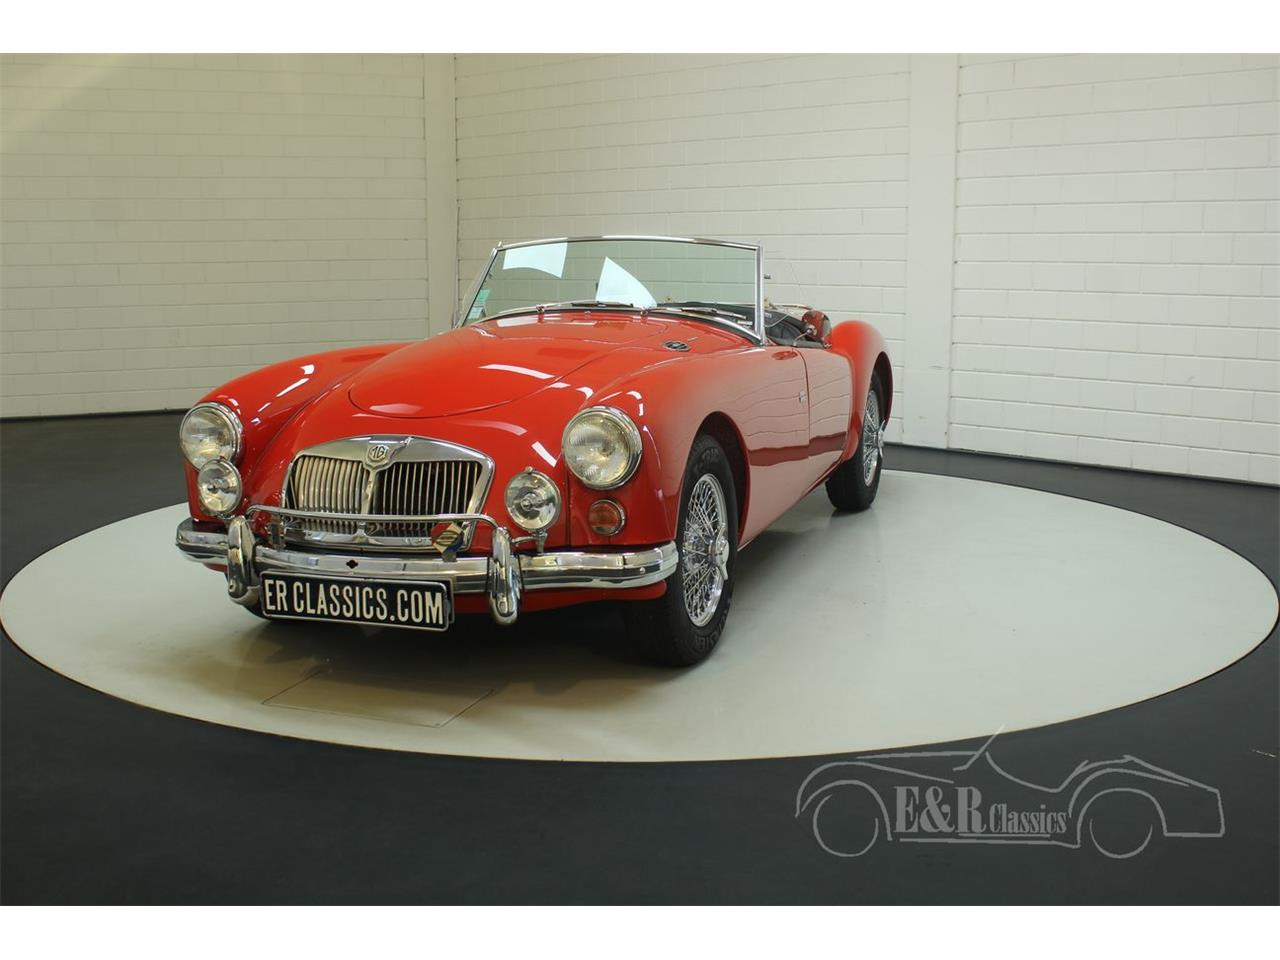 Large Picture of '62 MG MGA located in Waalwijk noord brabant - $44,900.00 Offered by E & R Classics - Q2W8